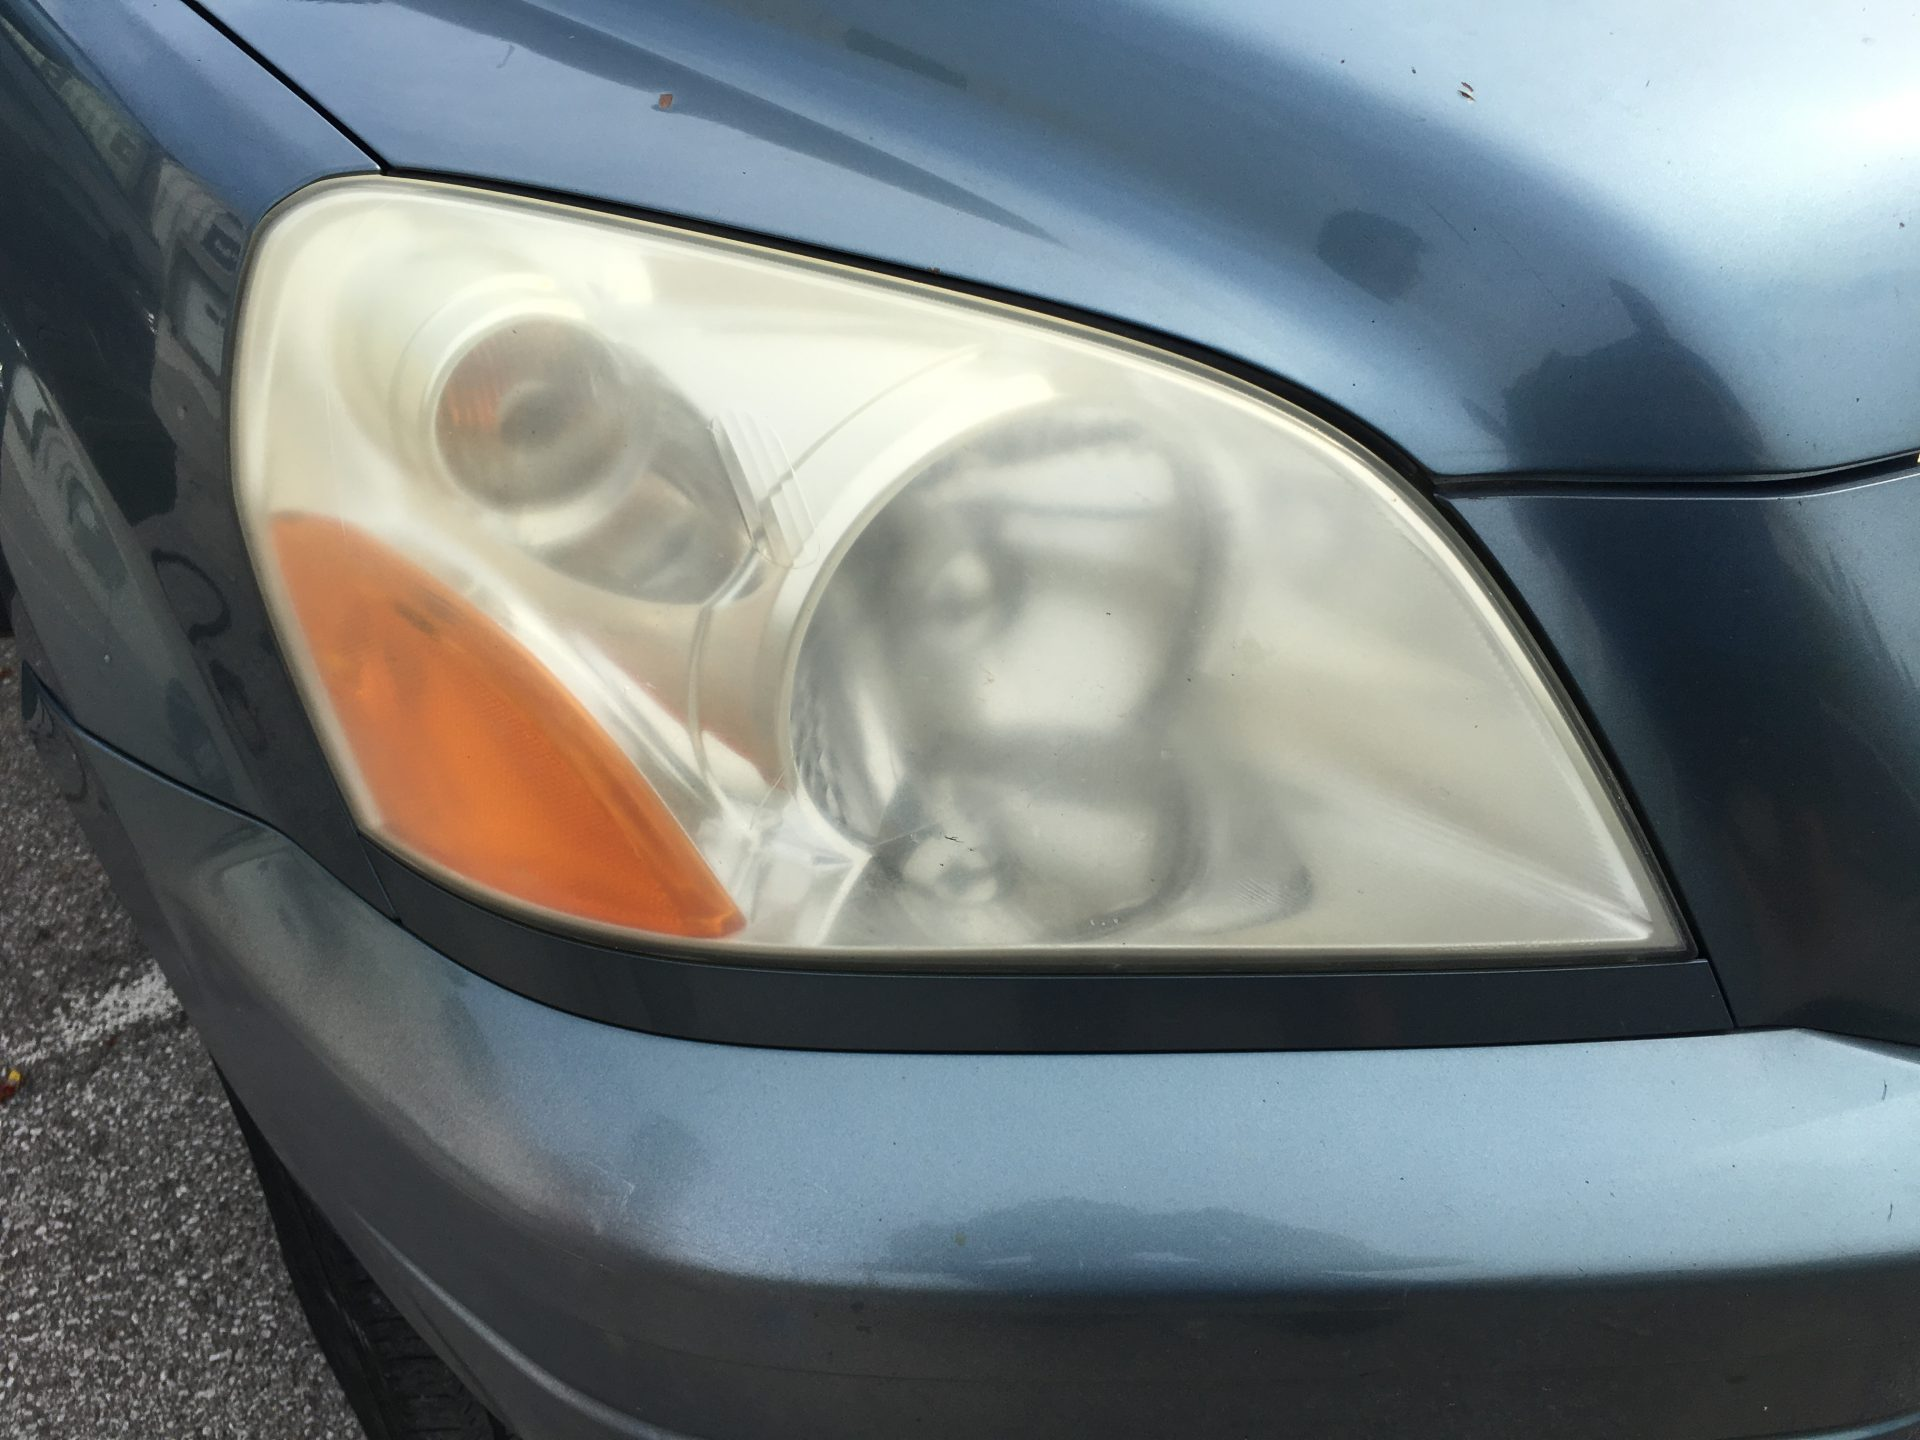 Honda CRV Faded Headlight